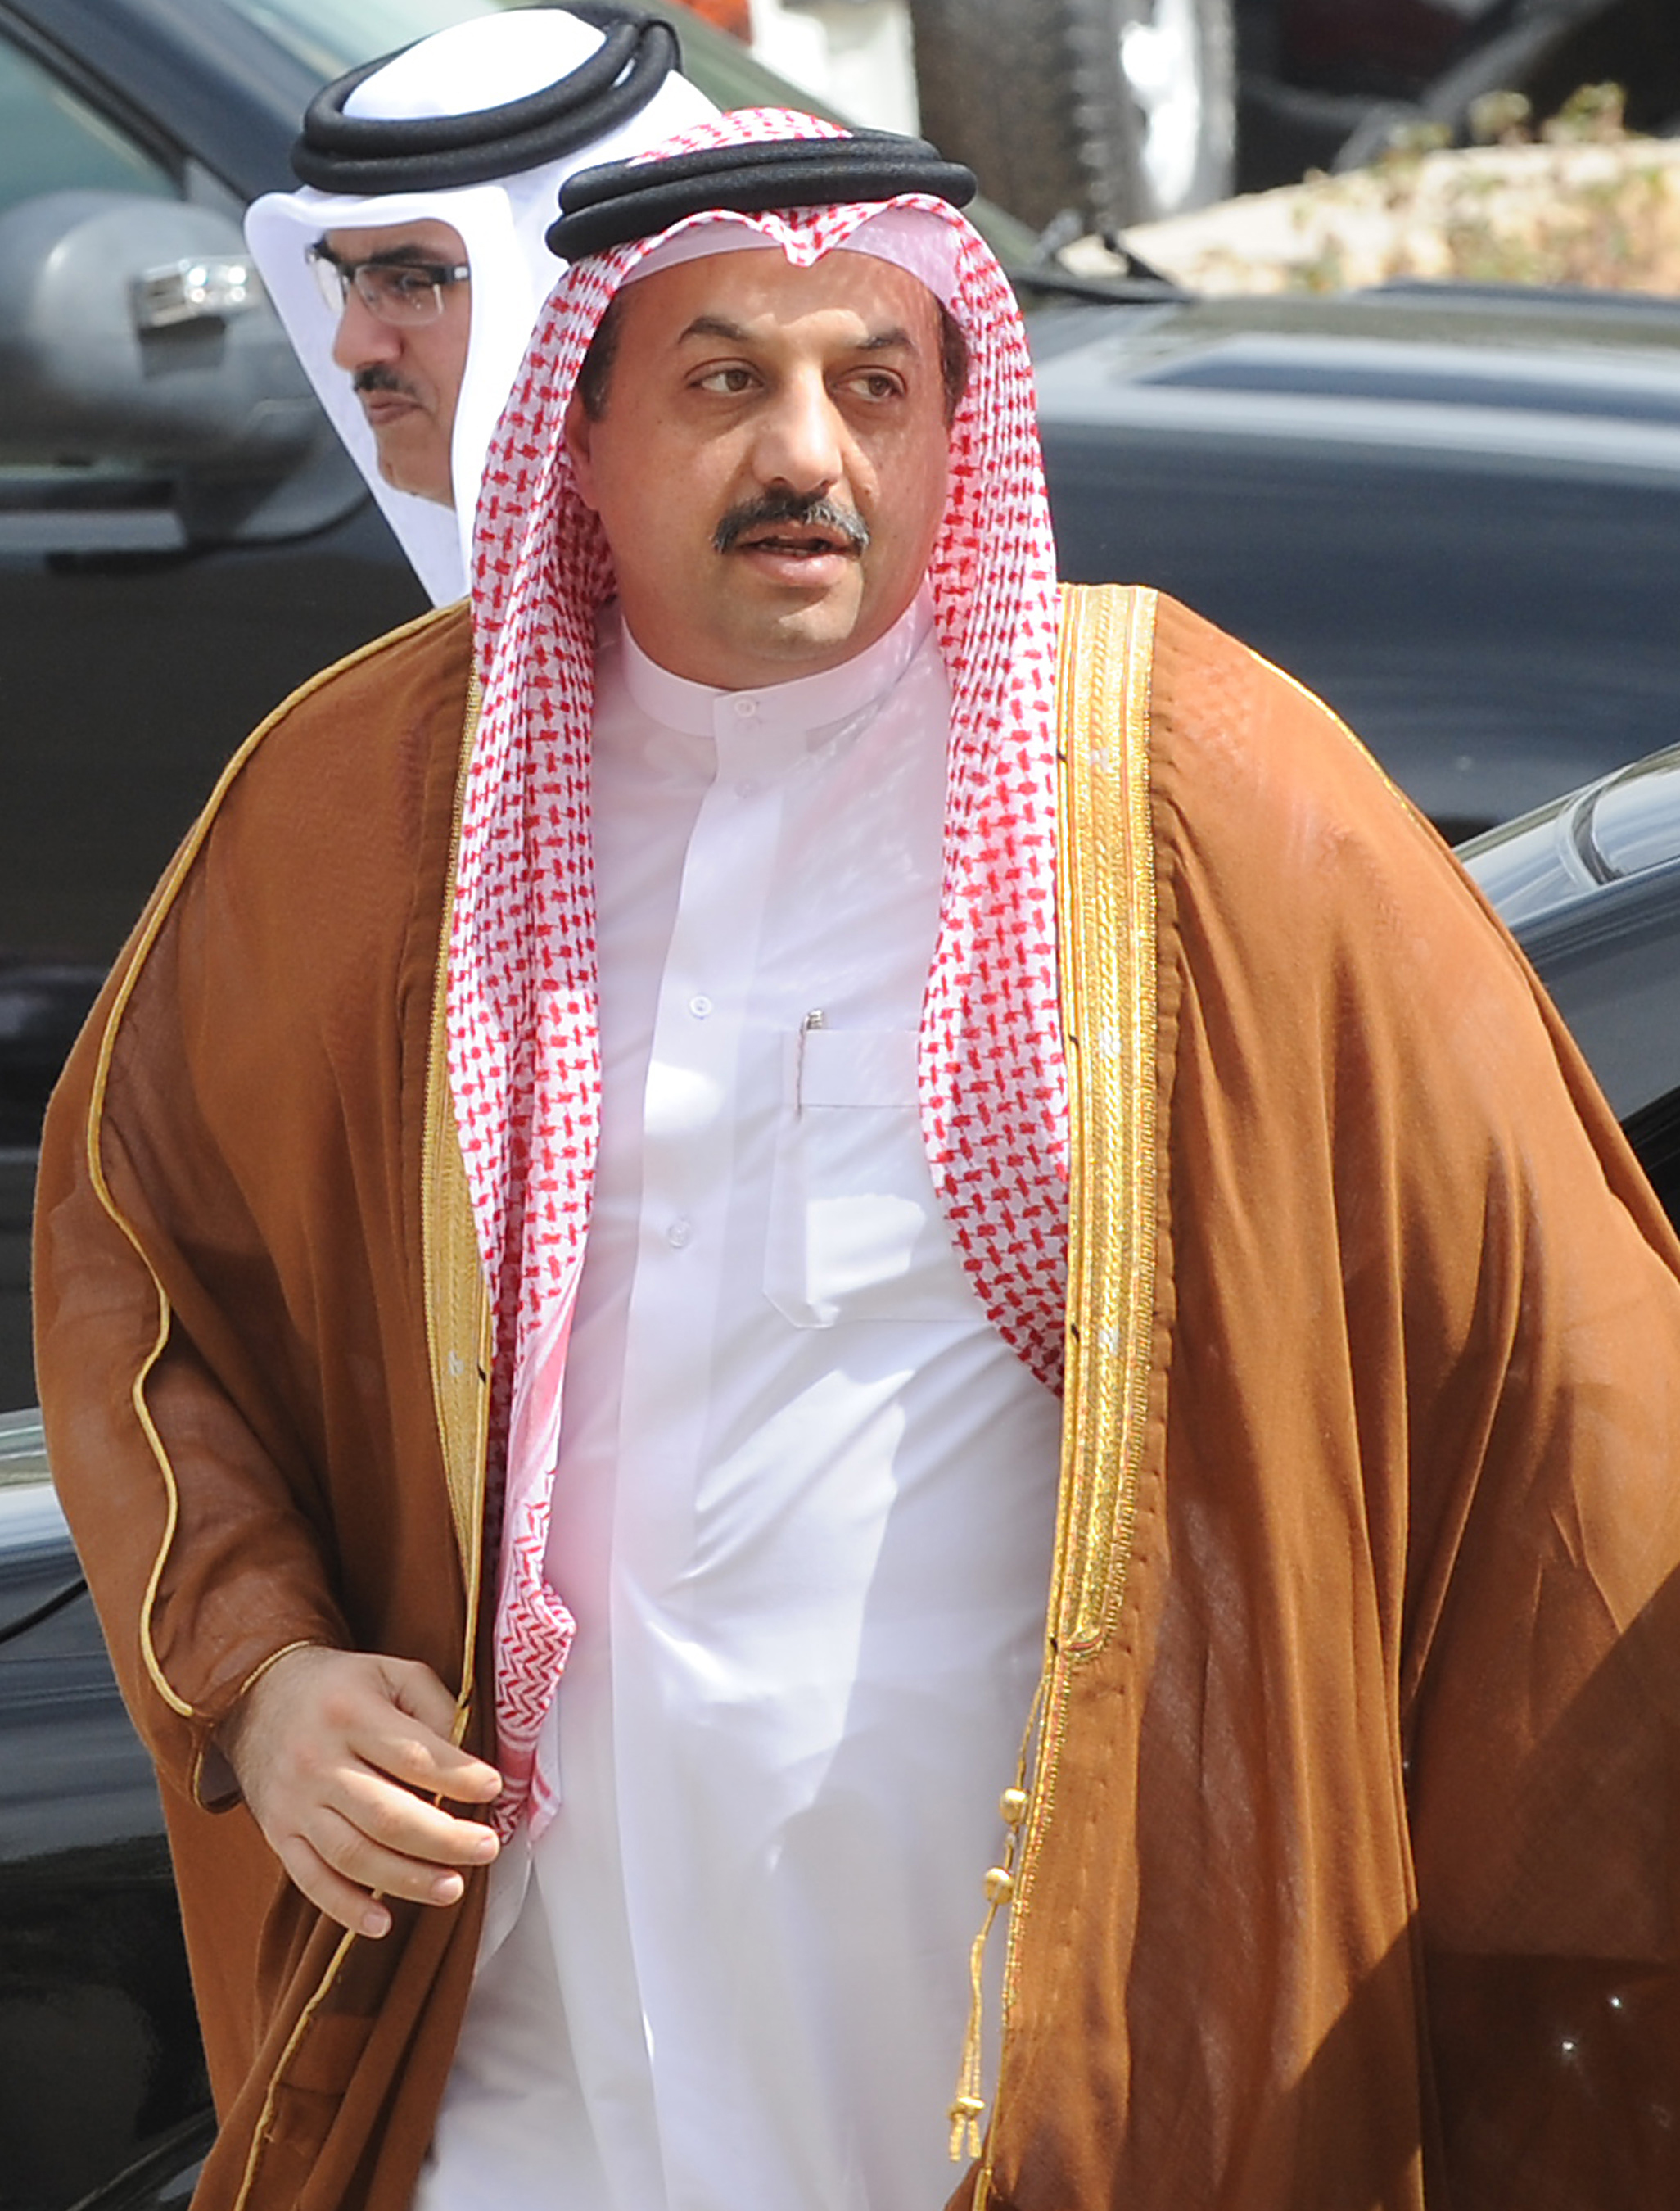 Qatari Foreign Minister Khalid bin Mohammed al-Attiyah arrives to attend the 130th meeting of the Foreign Ministers of the Gulf Cooperation Council (GCC) in Riyadh on March 4, 2014.